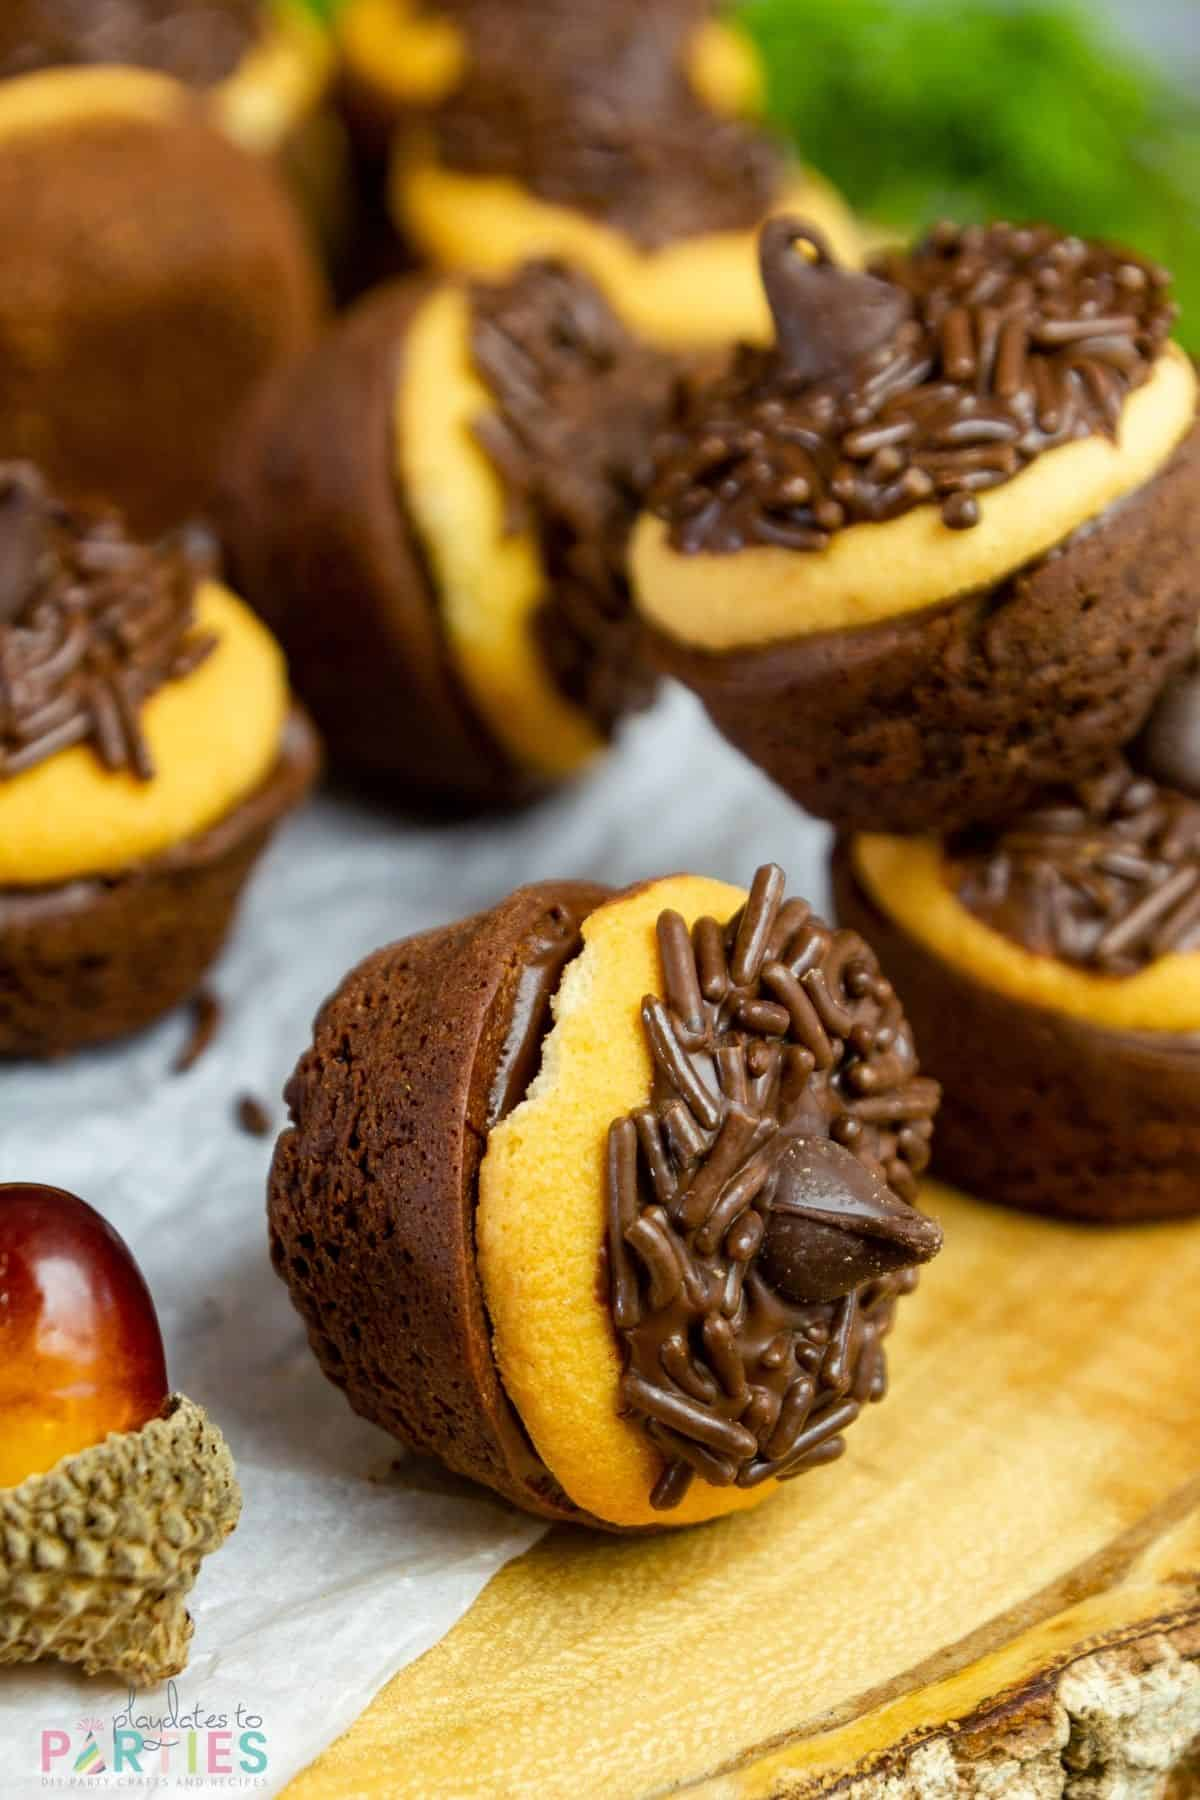 A fall themed brownie treat on its side.